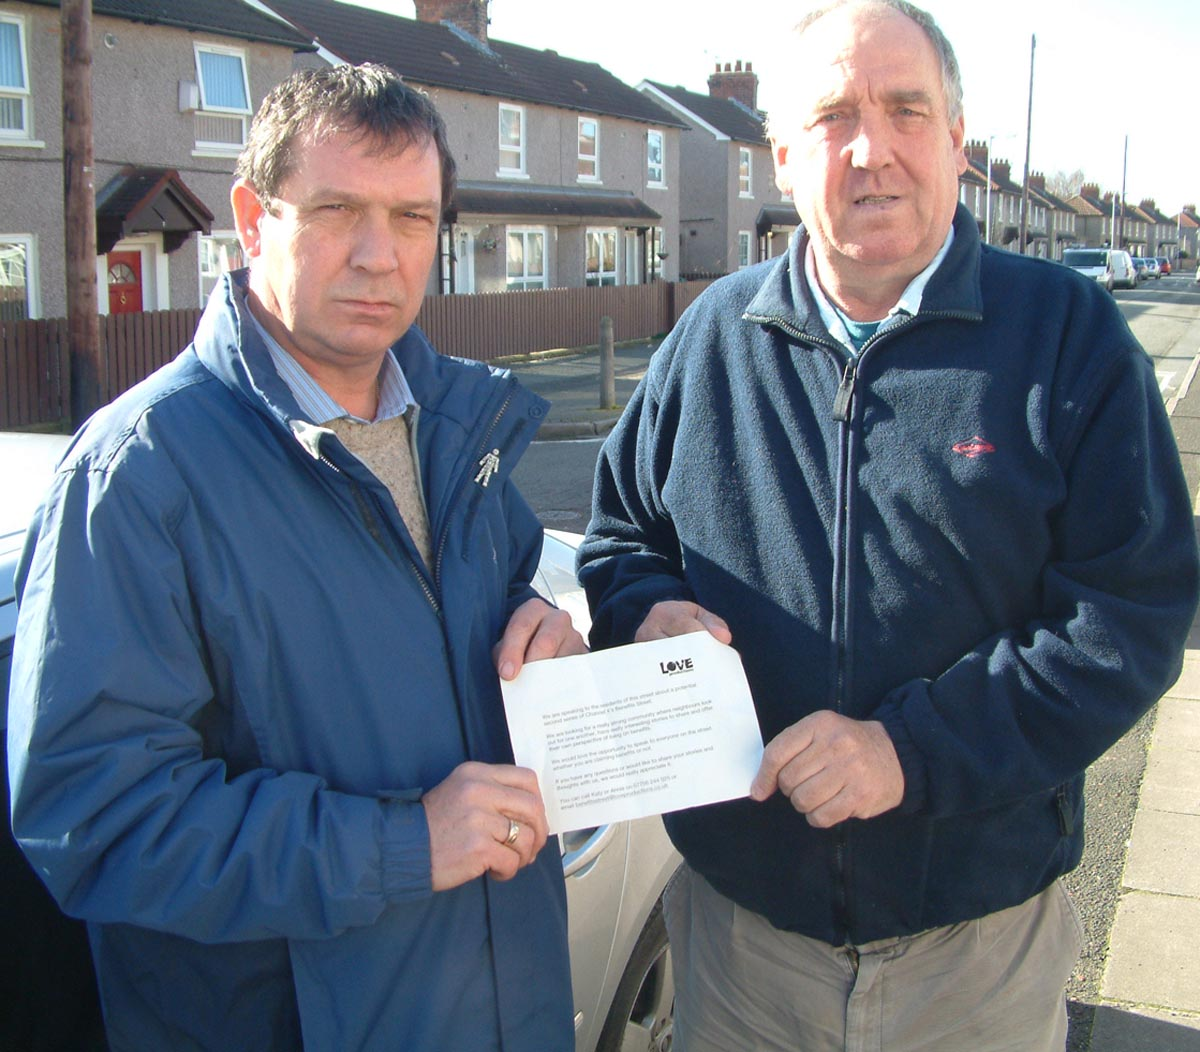 Cllr Jim Crabtree and Frank Harrison with a copy of the letter this afternoon